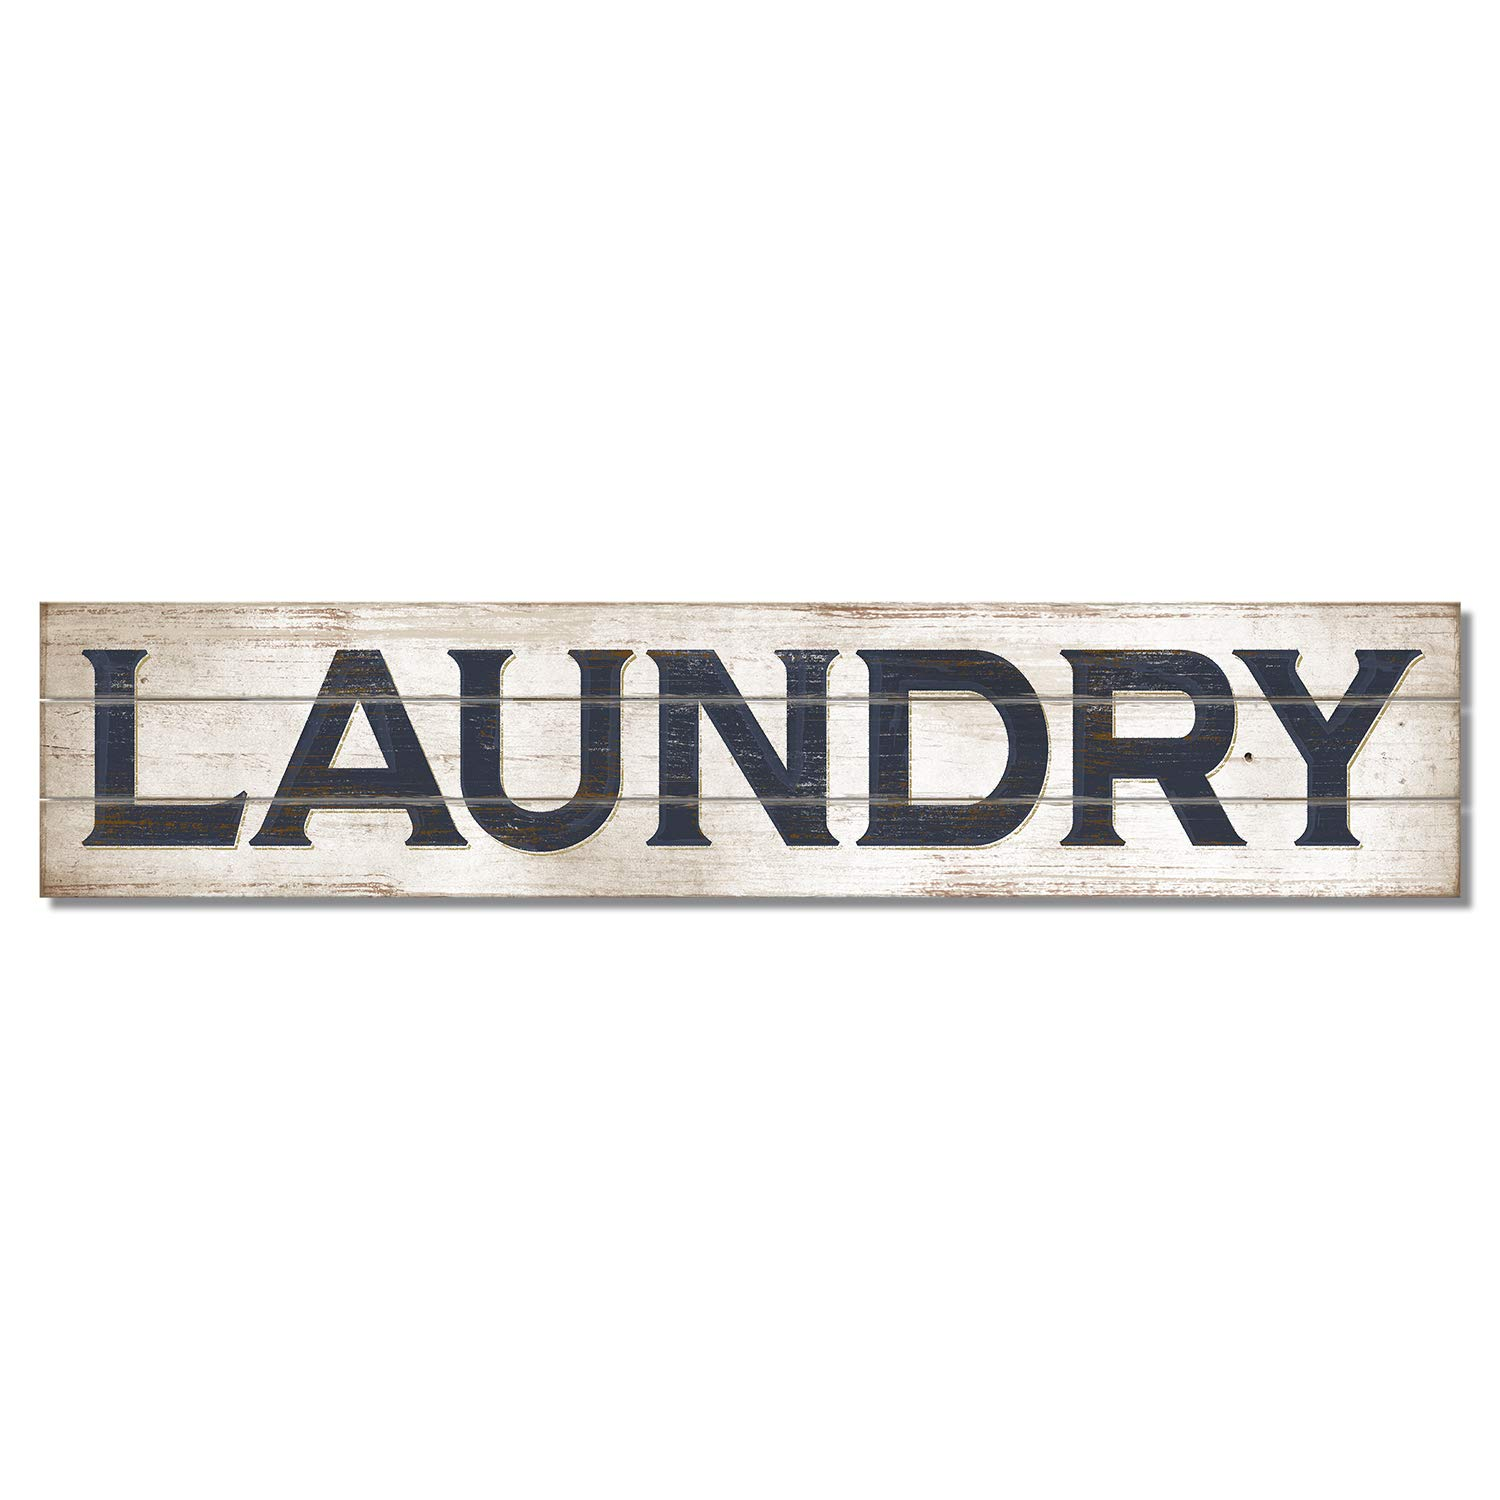 Highland Home Easy-to-use Laundry 36 inch by Pallet Sign Pine Wood Albuquerque Mall 7.5